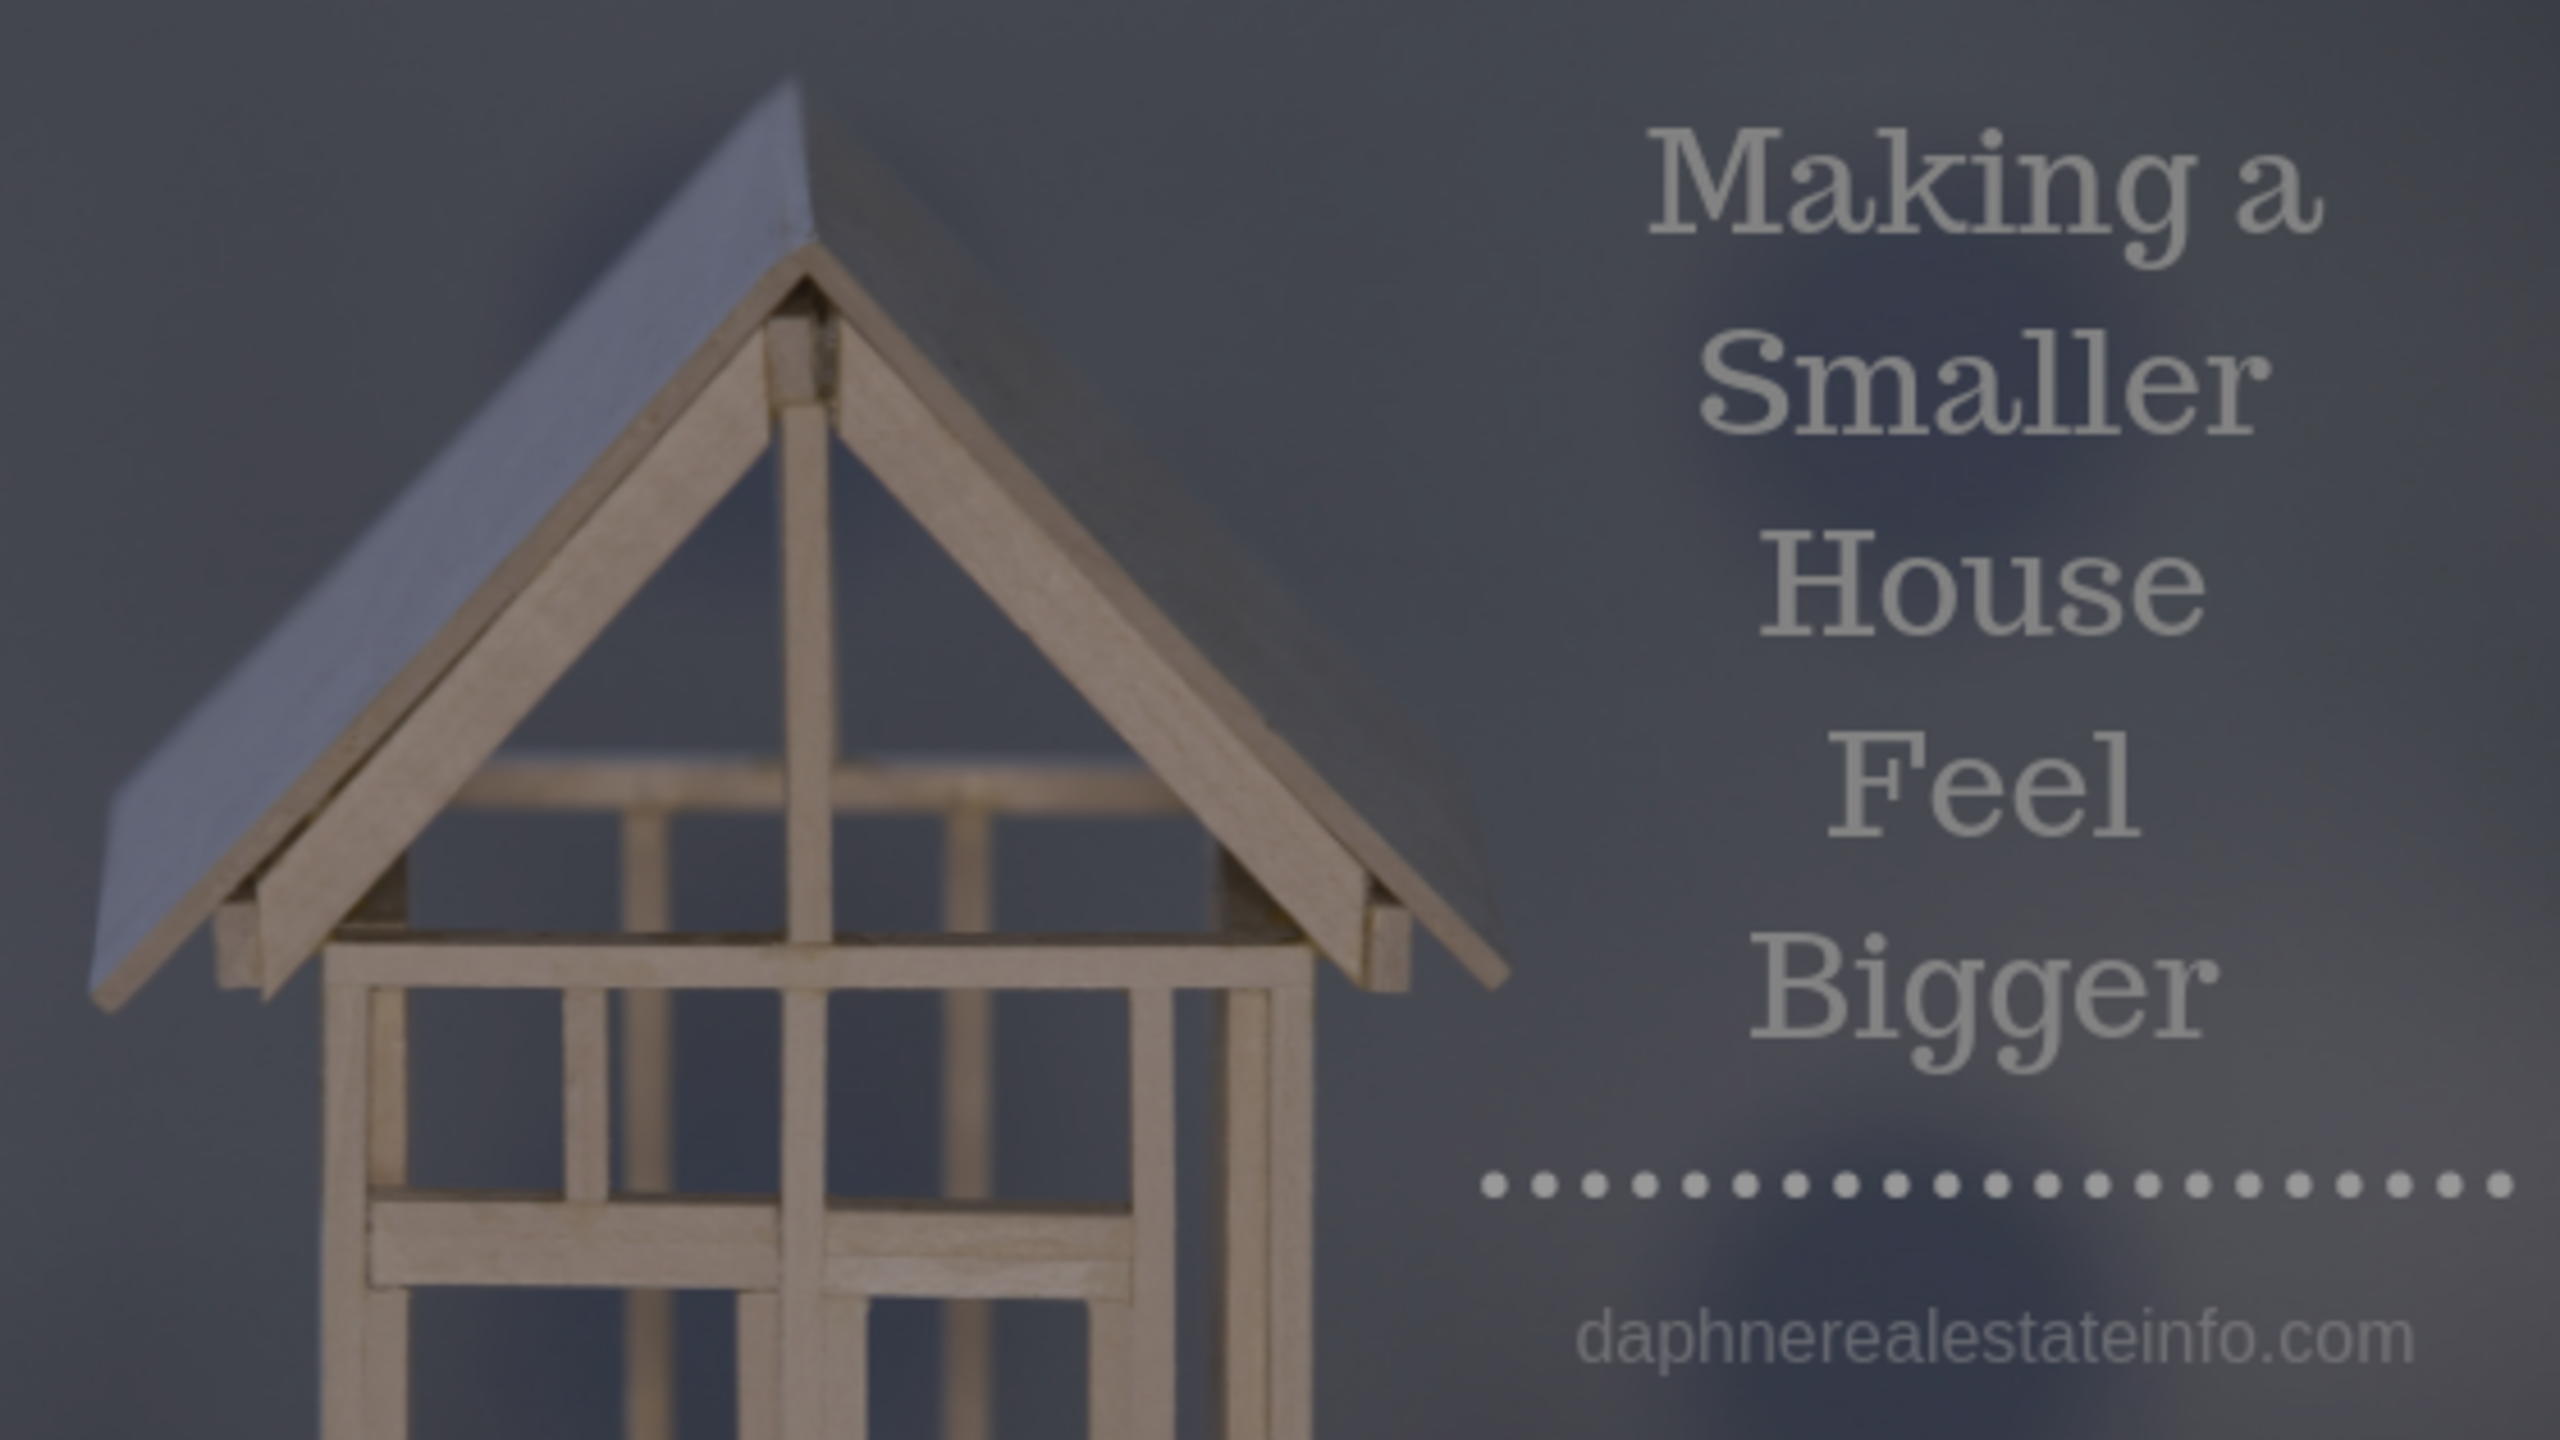 Making a Smaller Home Feel Bigger